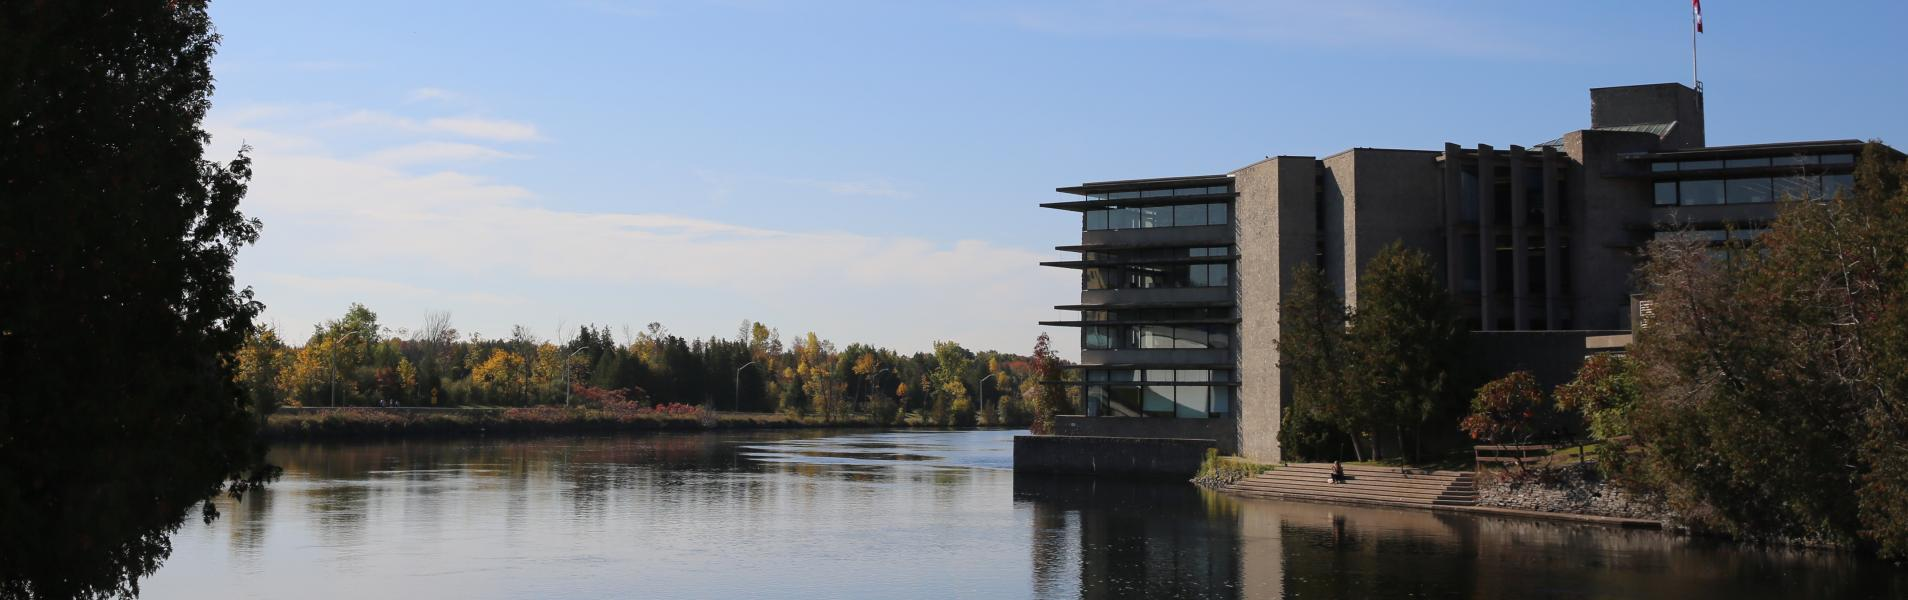 A view of bata library on the right with the Otonabee river on the left